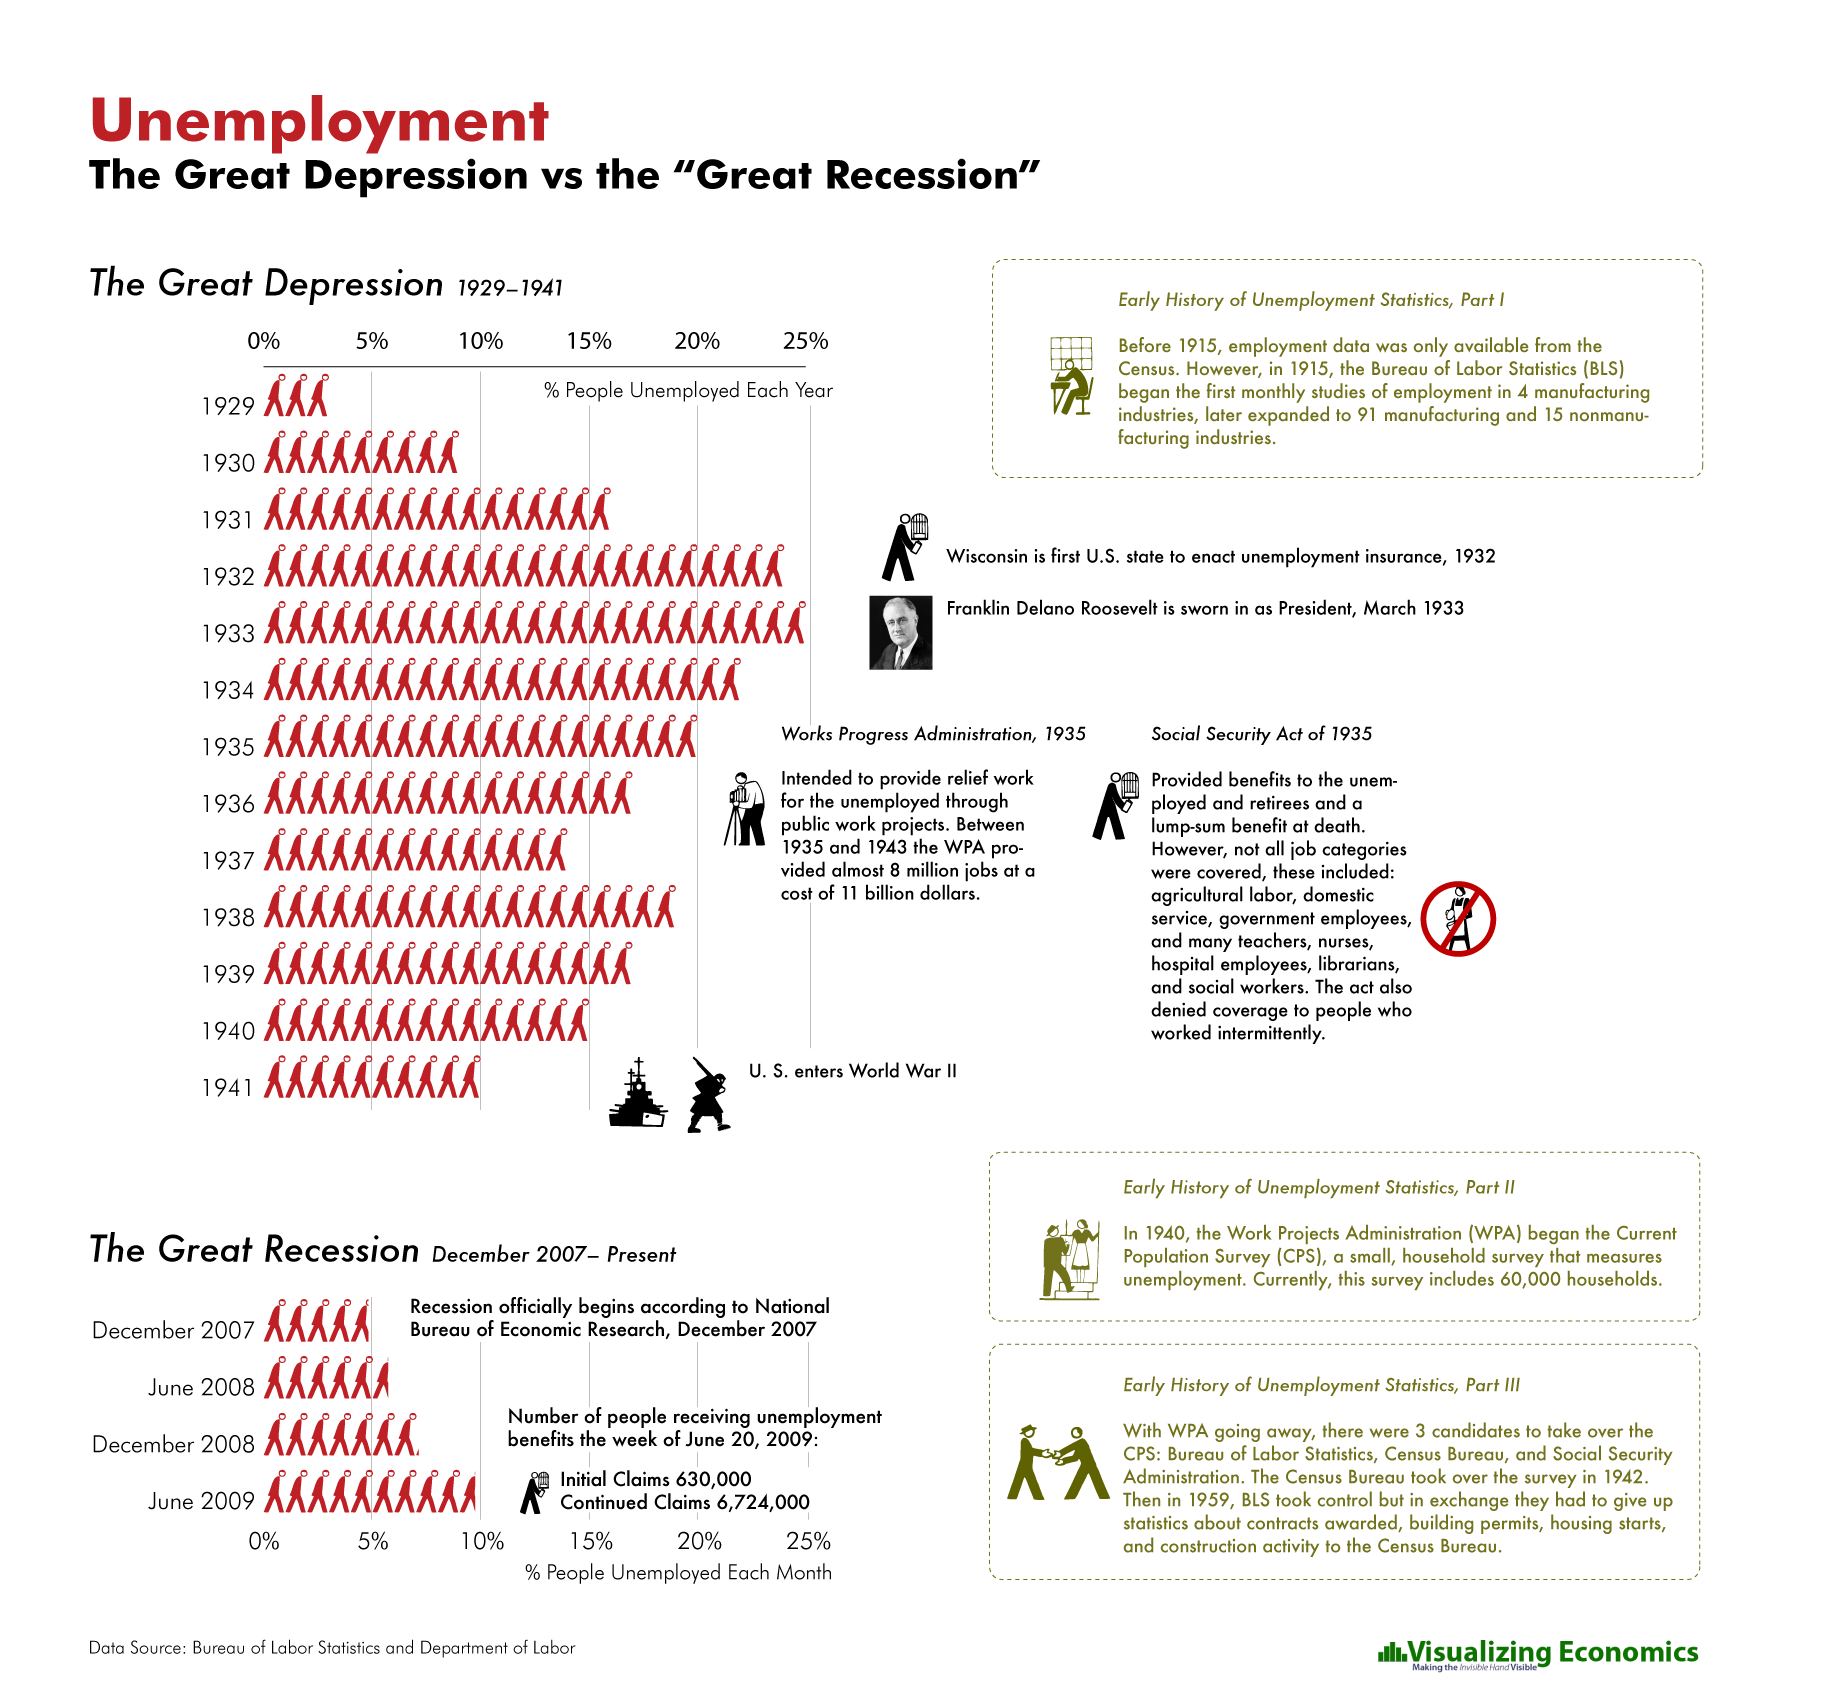 Unemployment In The Great Depression Vs The Great